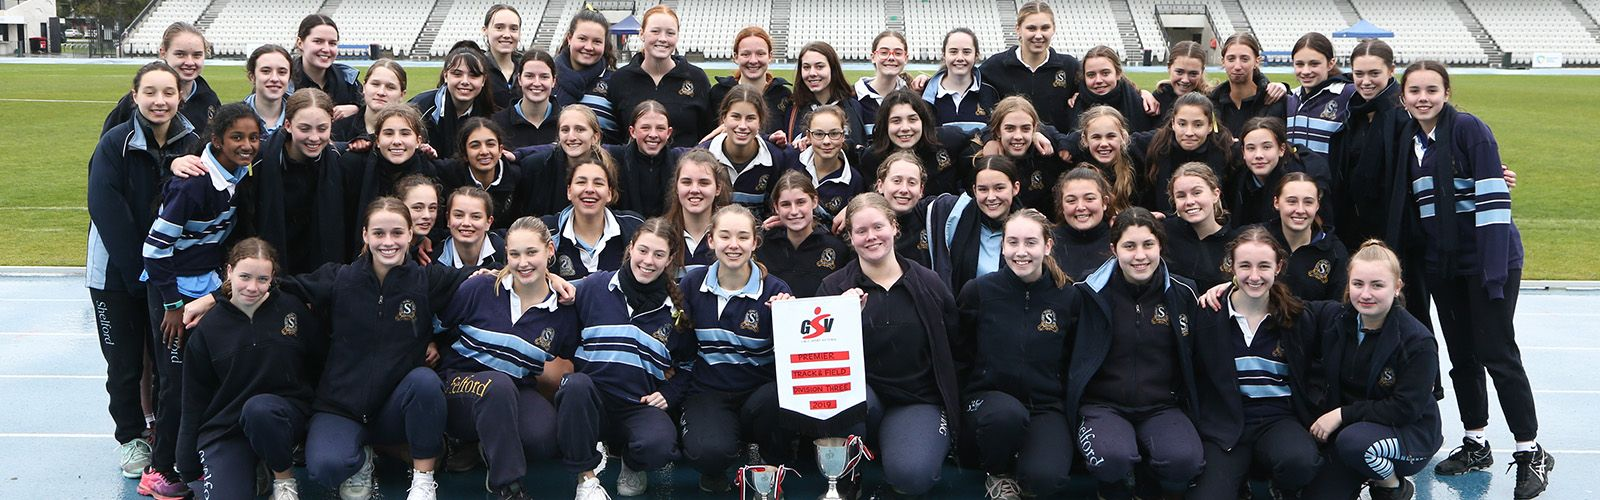 Shelford Girls' Grammar